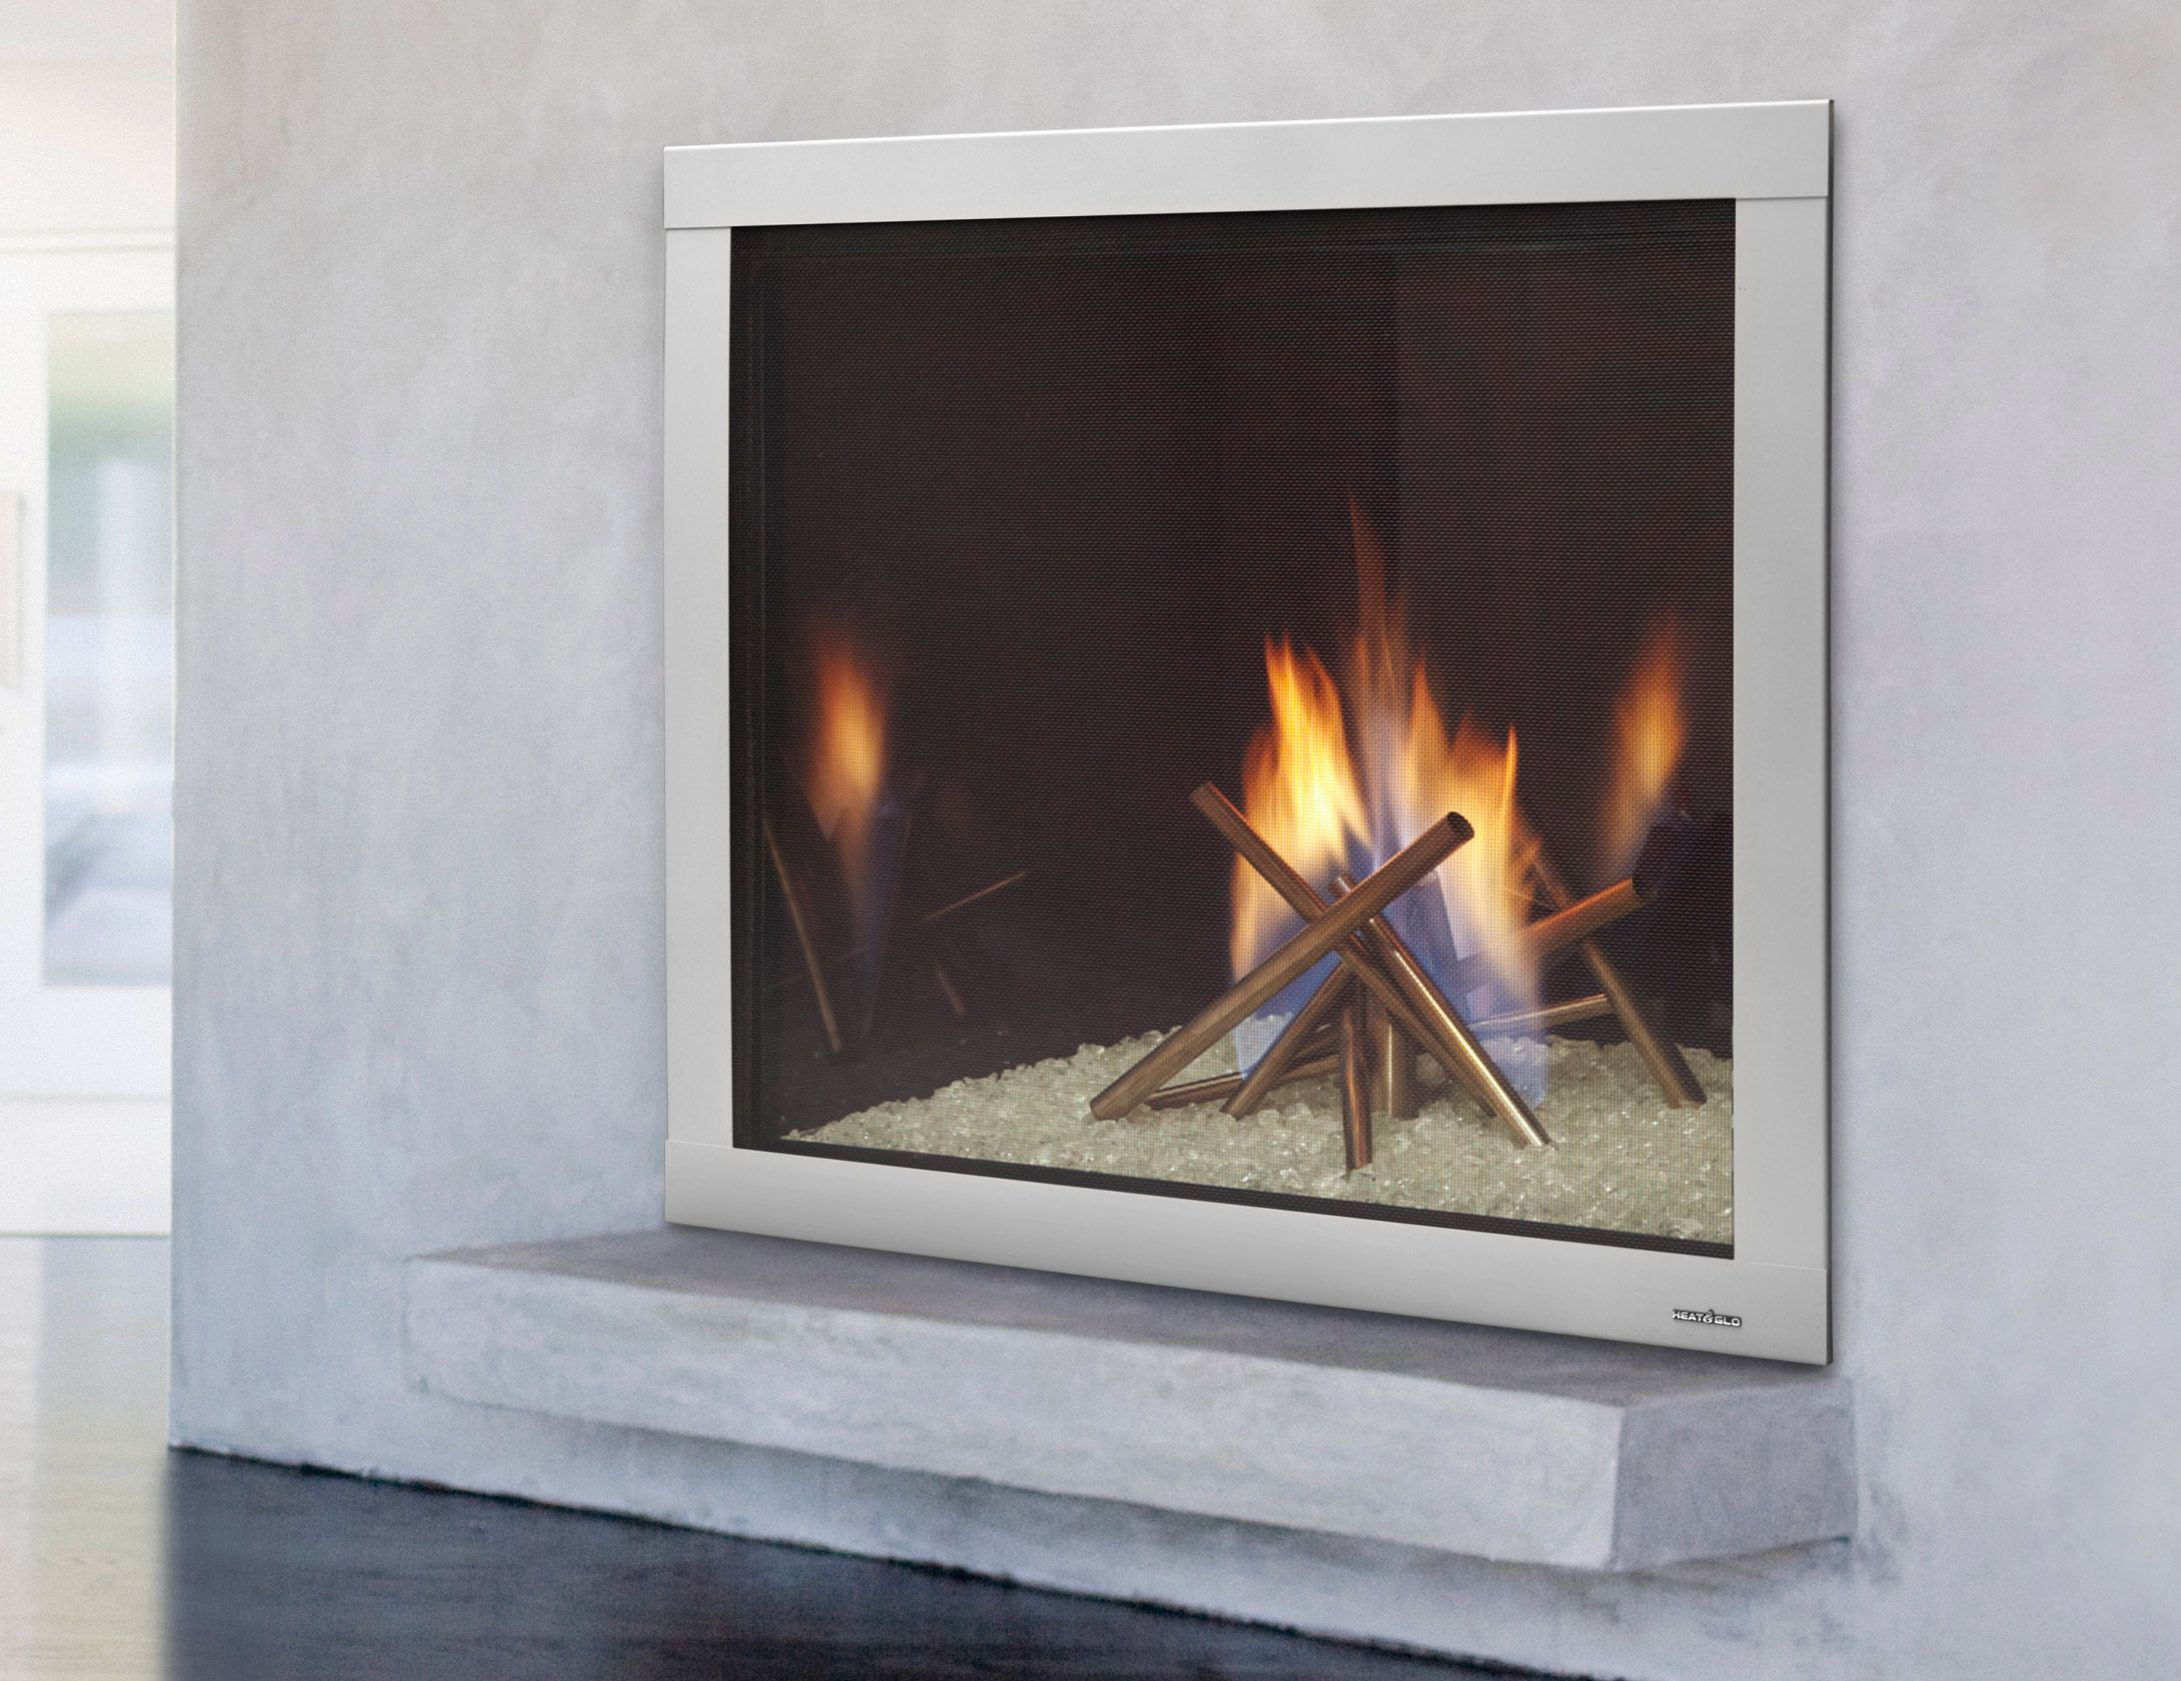 Solas Fireplace Luxury Modern Fireplace Inserts Charming Fireplace